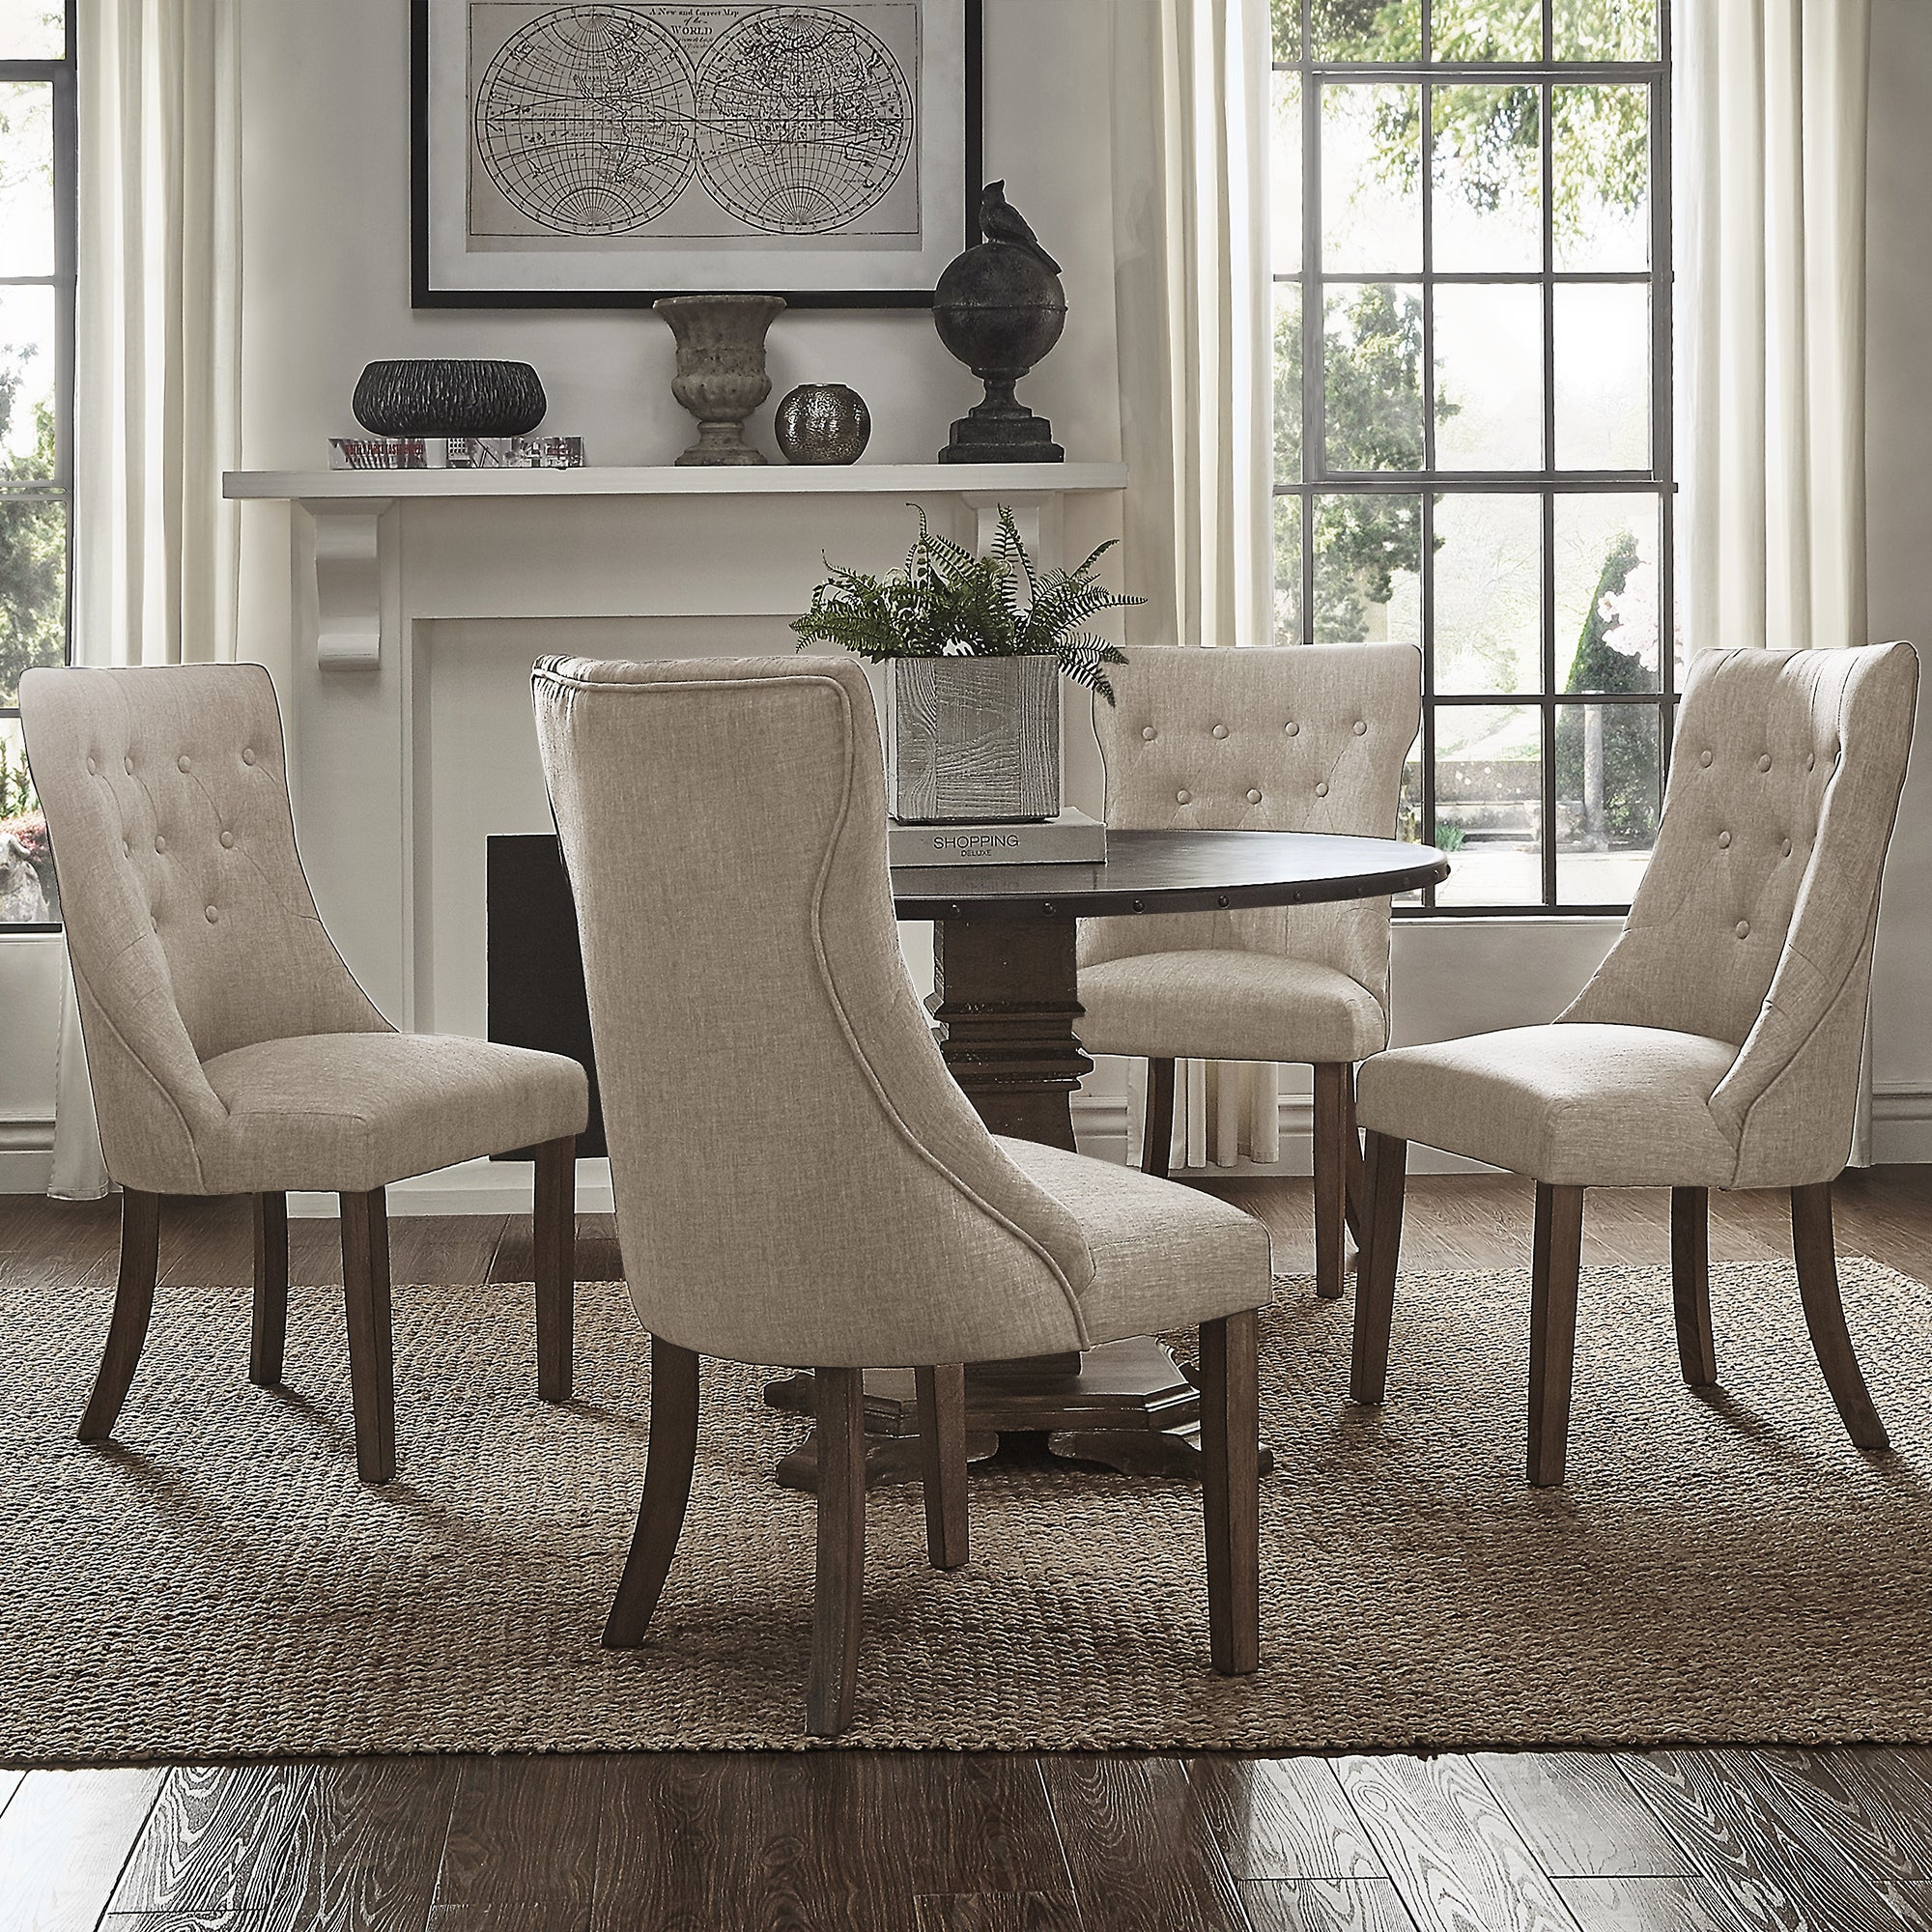 Fabulous Janelle Round Rustic Zinc Dining Set Tufted Chairs By Inspire Q Artisan Cjindustries Chair Design For Home Cjindustriesco